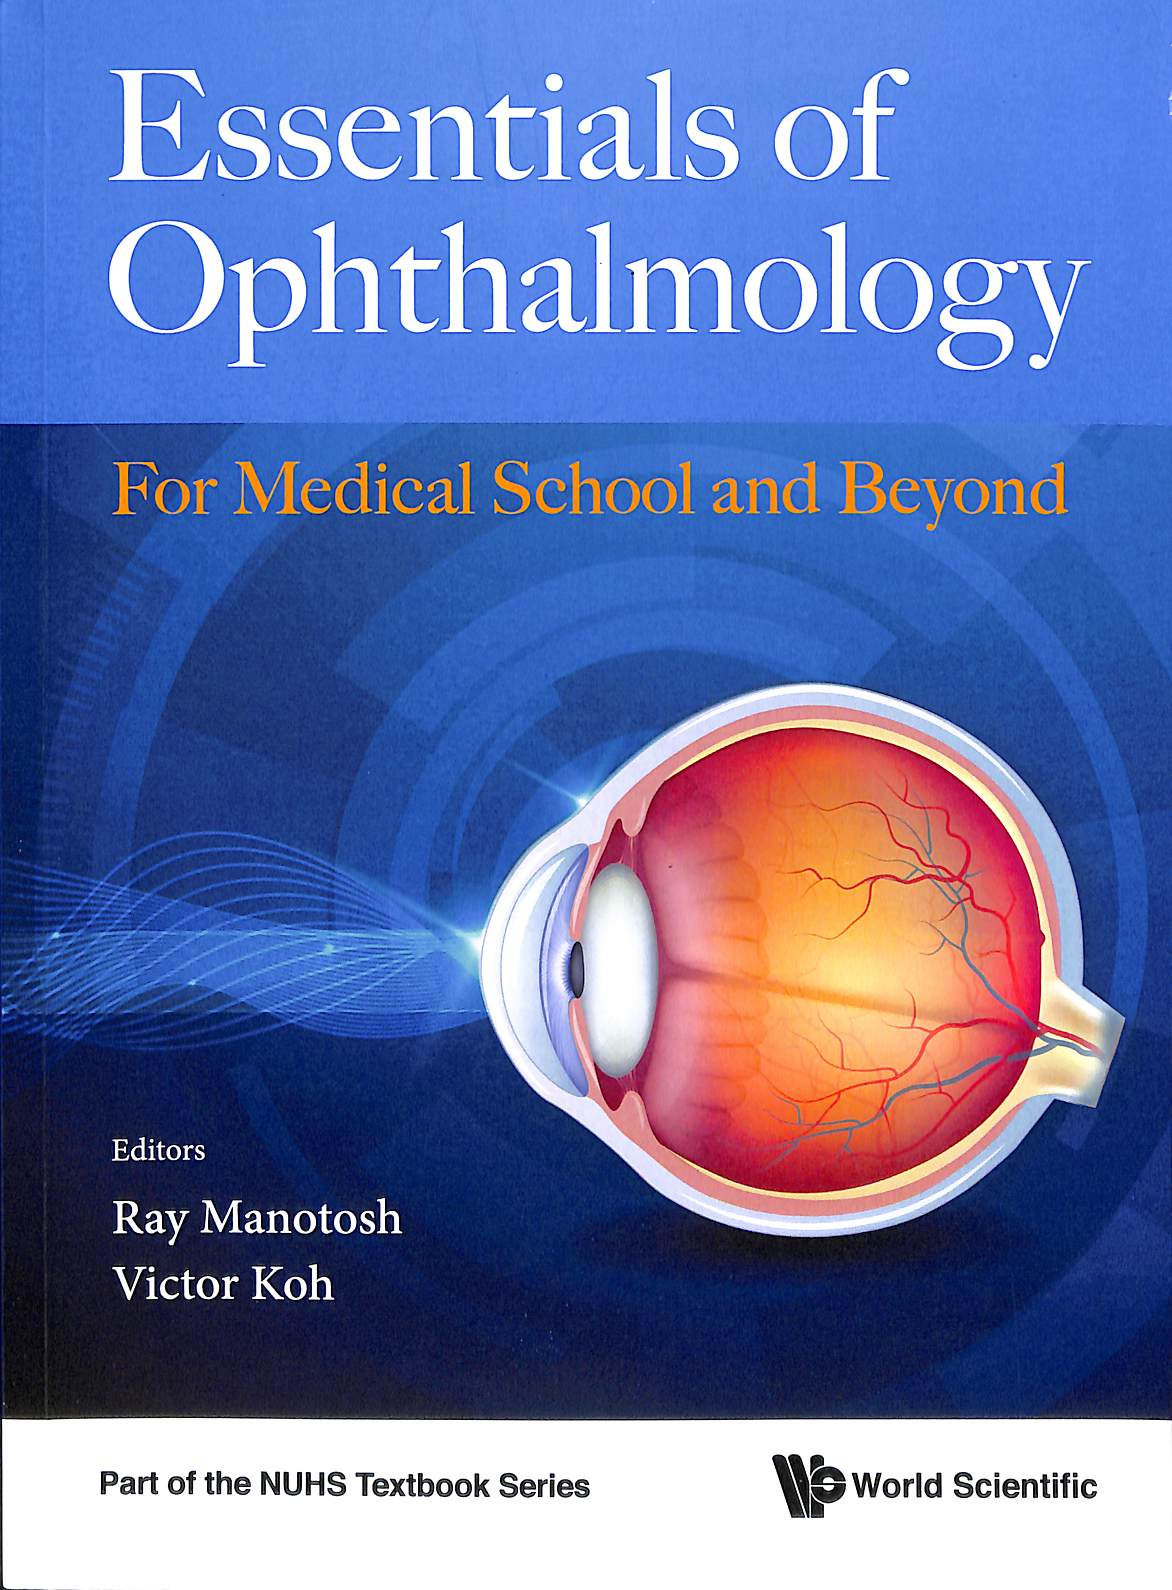 Essential of ophthalmology for medical school and beyond